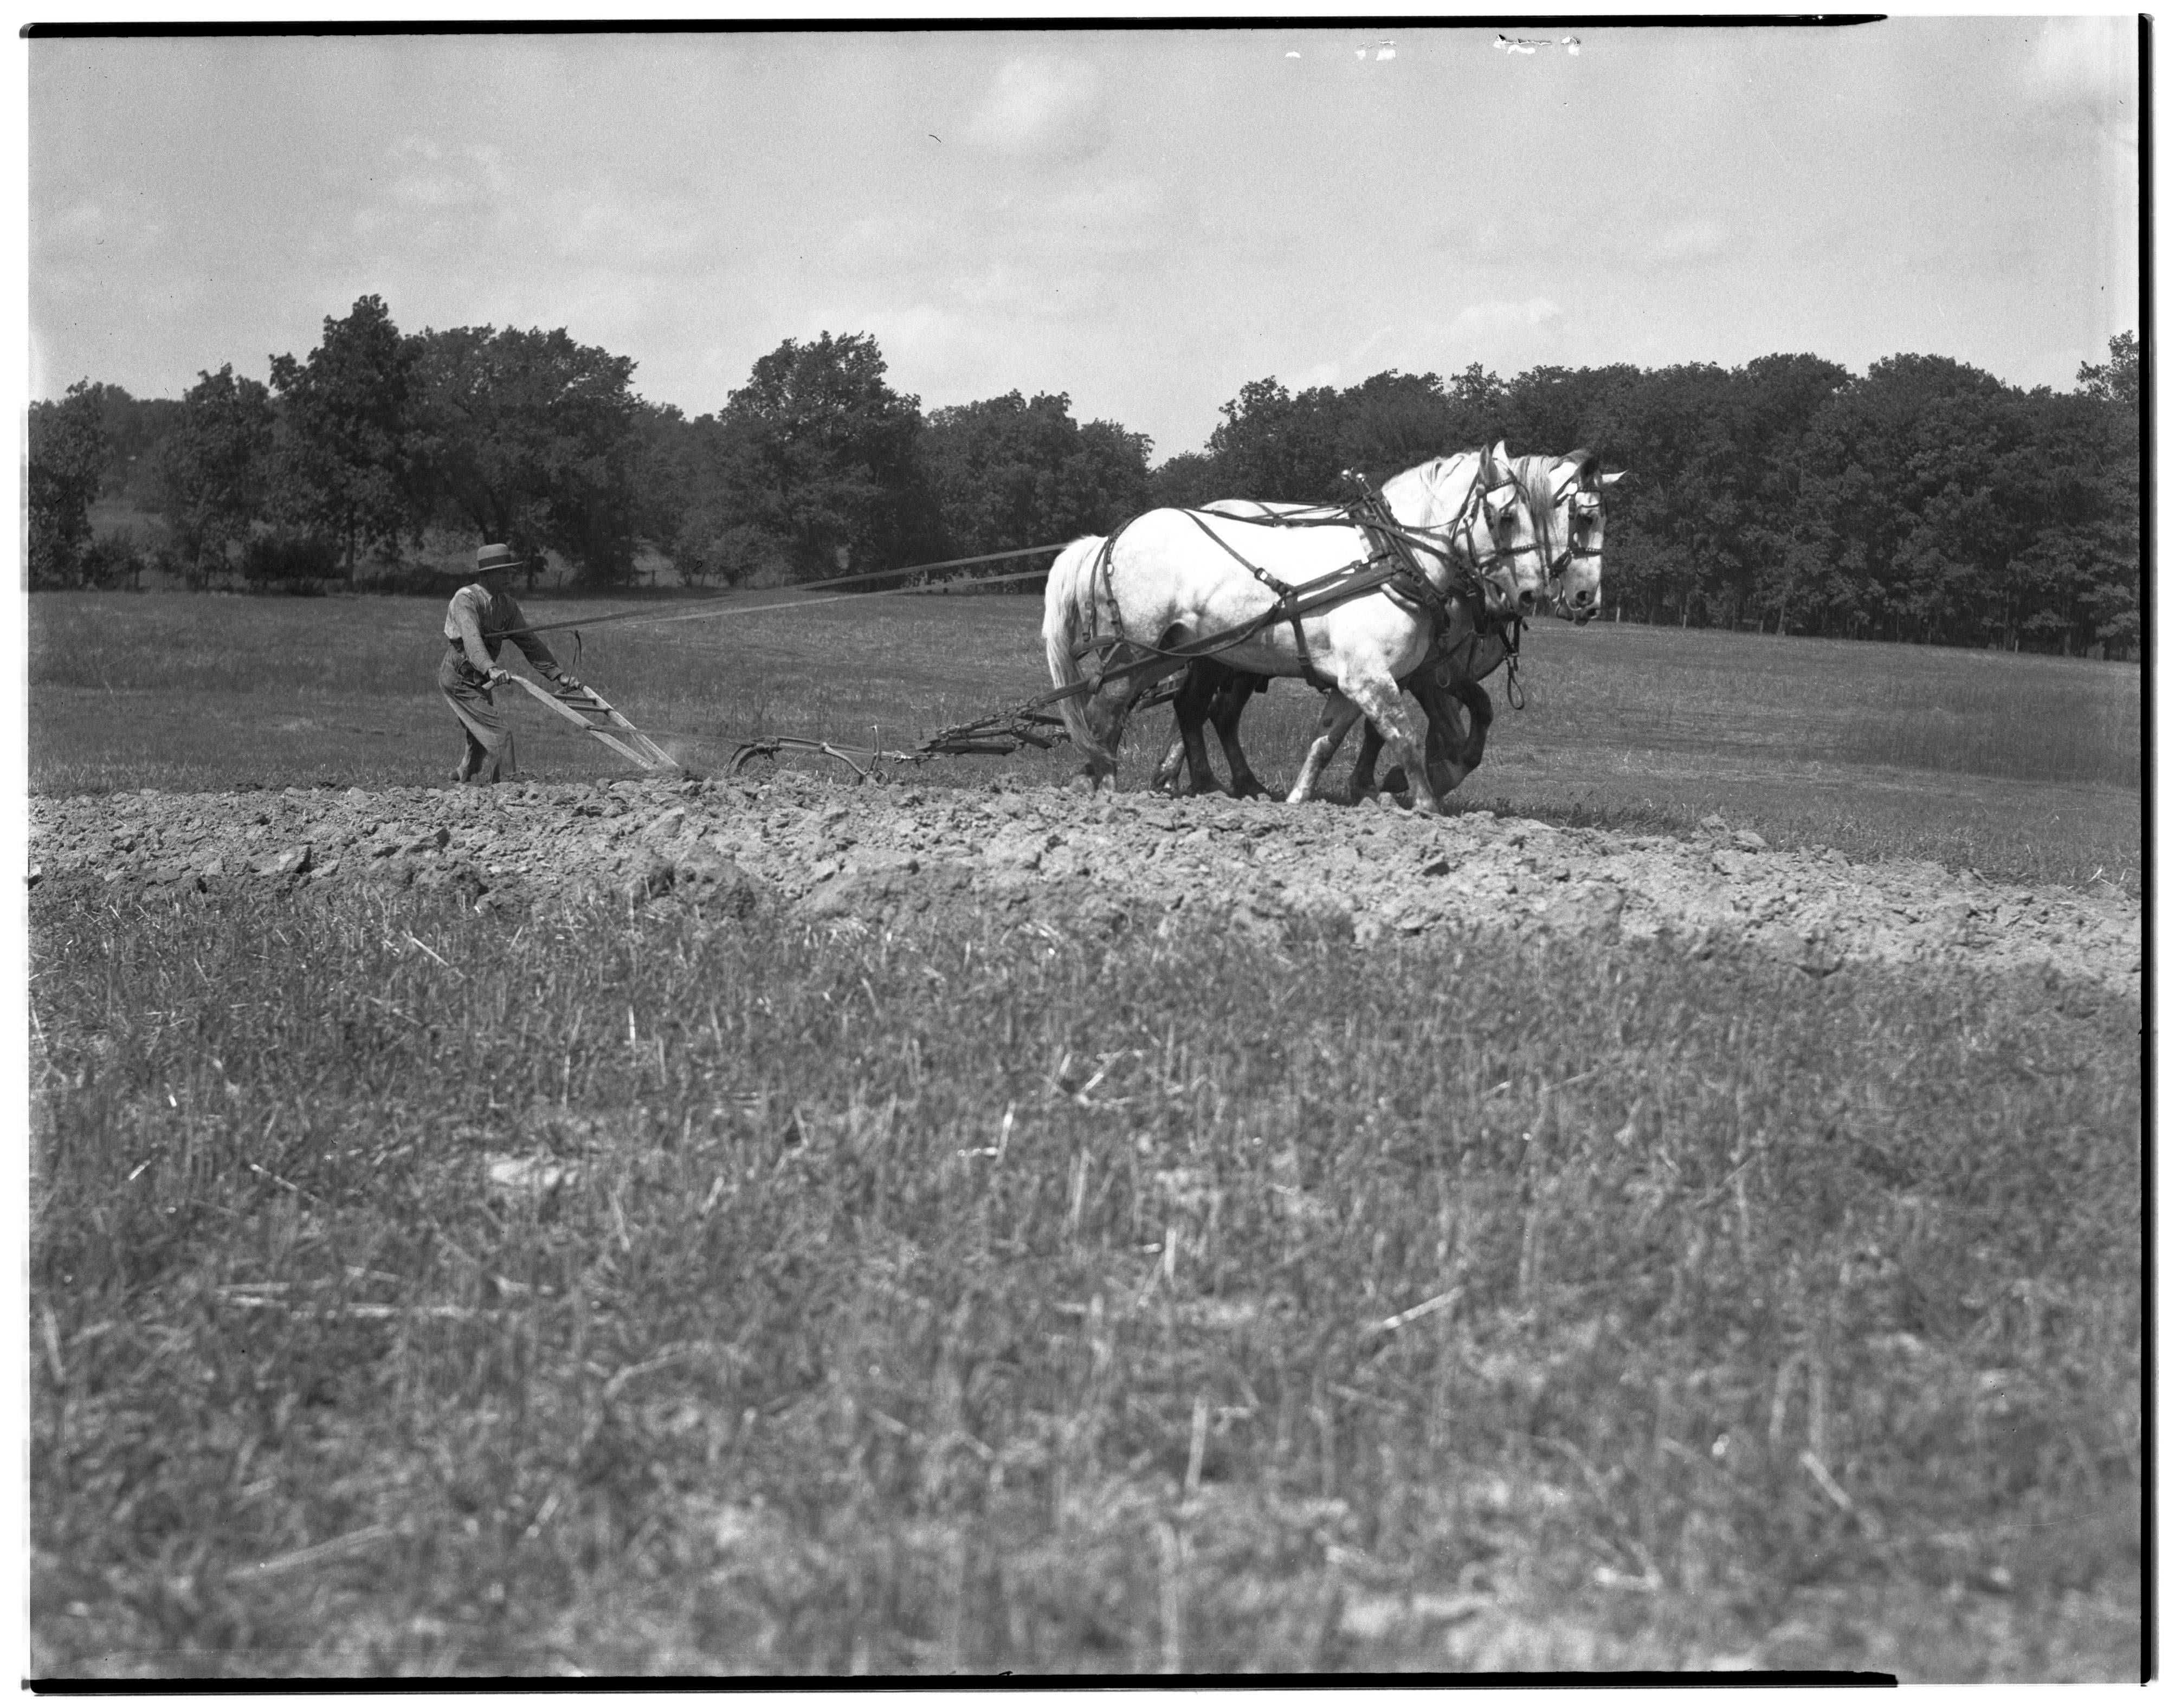 Plowing a Field image